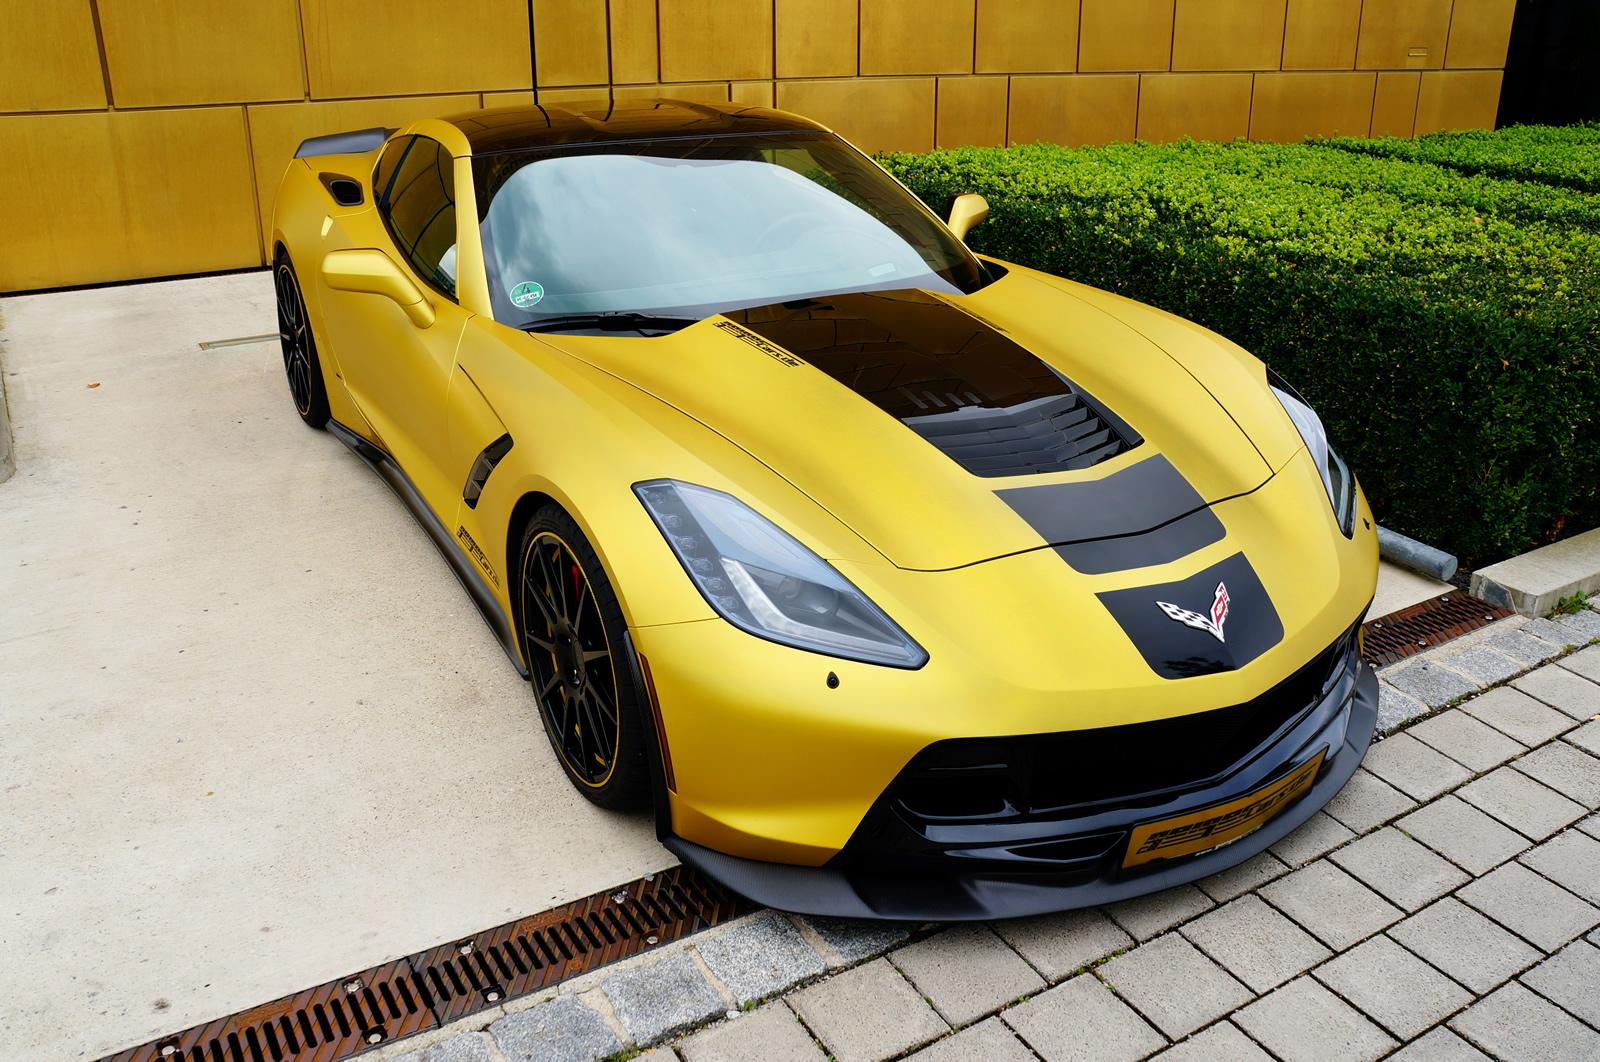 2019 chevrolet corvette c7 stingray car photos catalog 2018. Black Bedroom Furniture Sets. Home Design Ideas